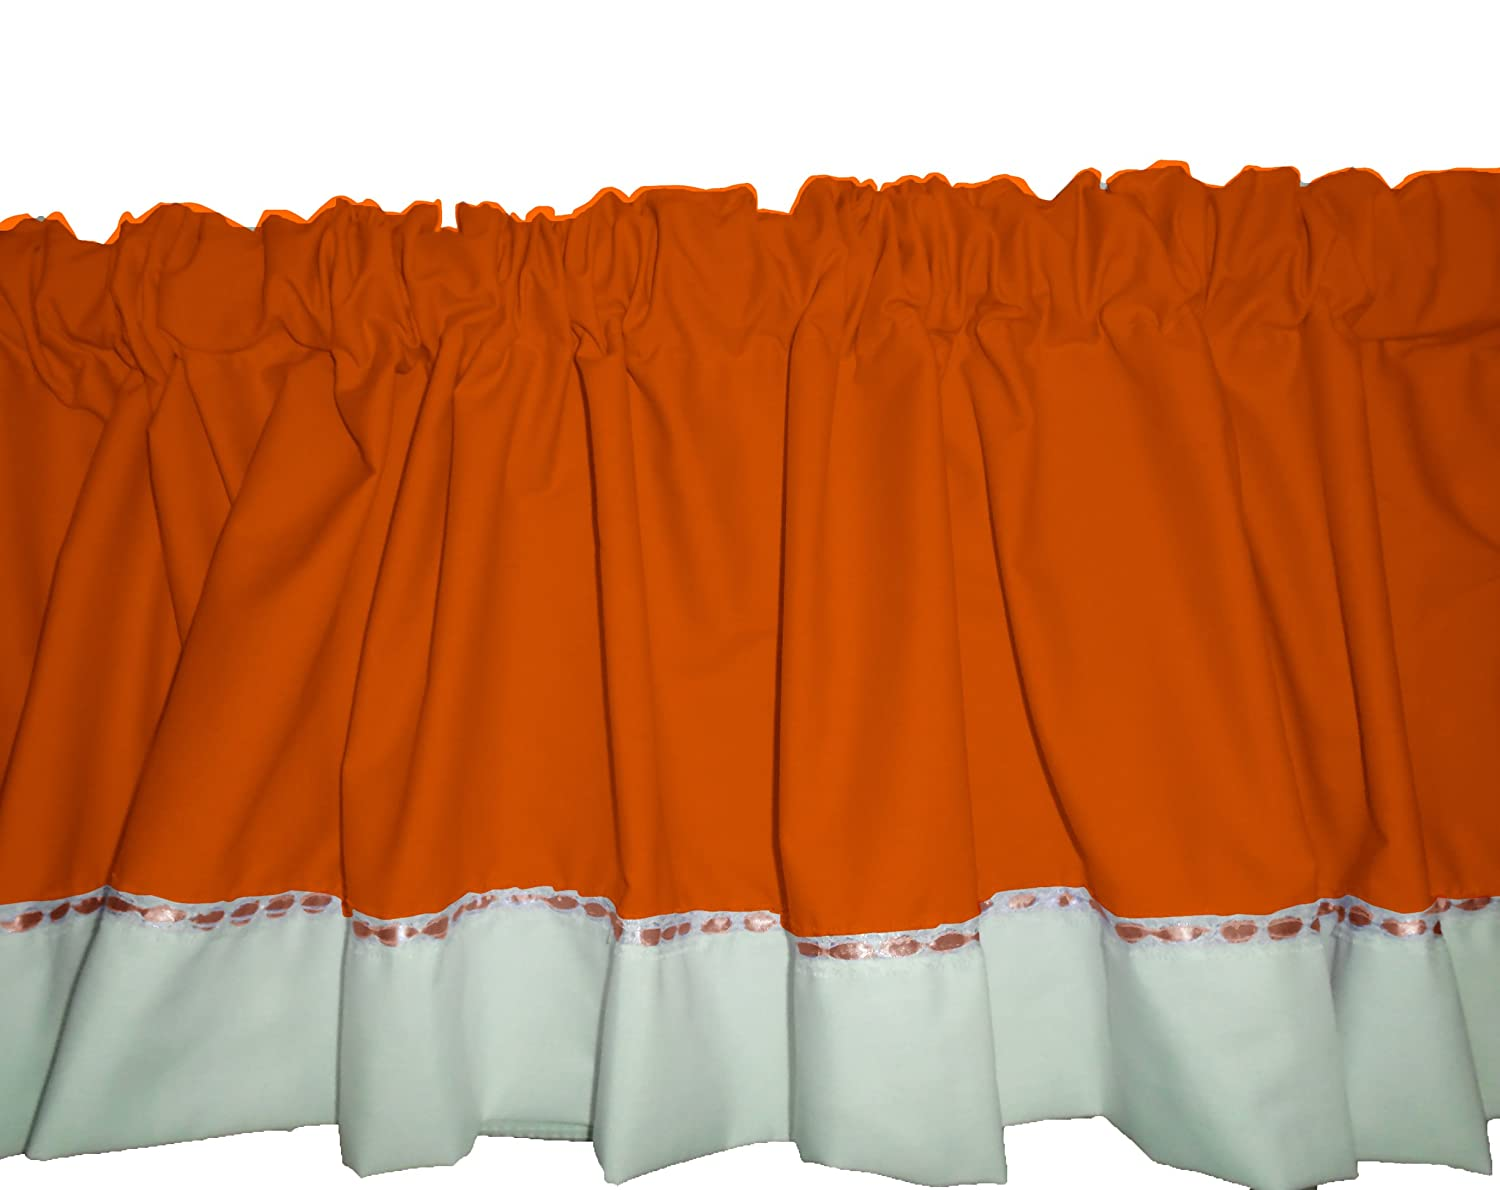 BabyDoll Regal Window Valance, Orange baby doll bedding 530VAL-orange